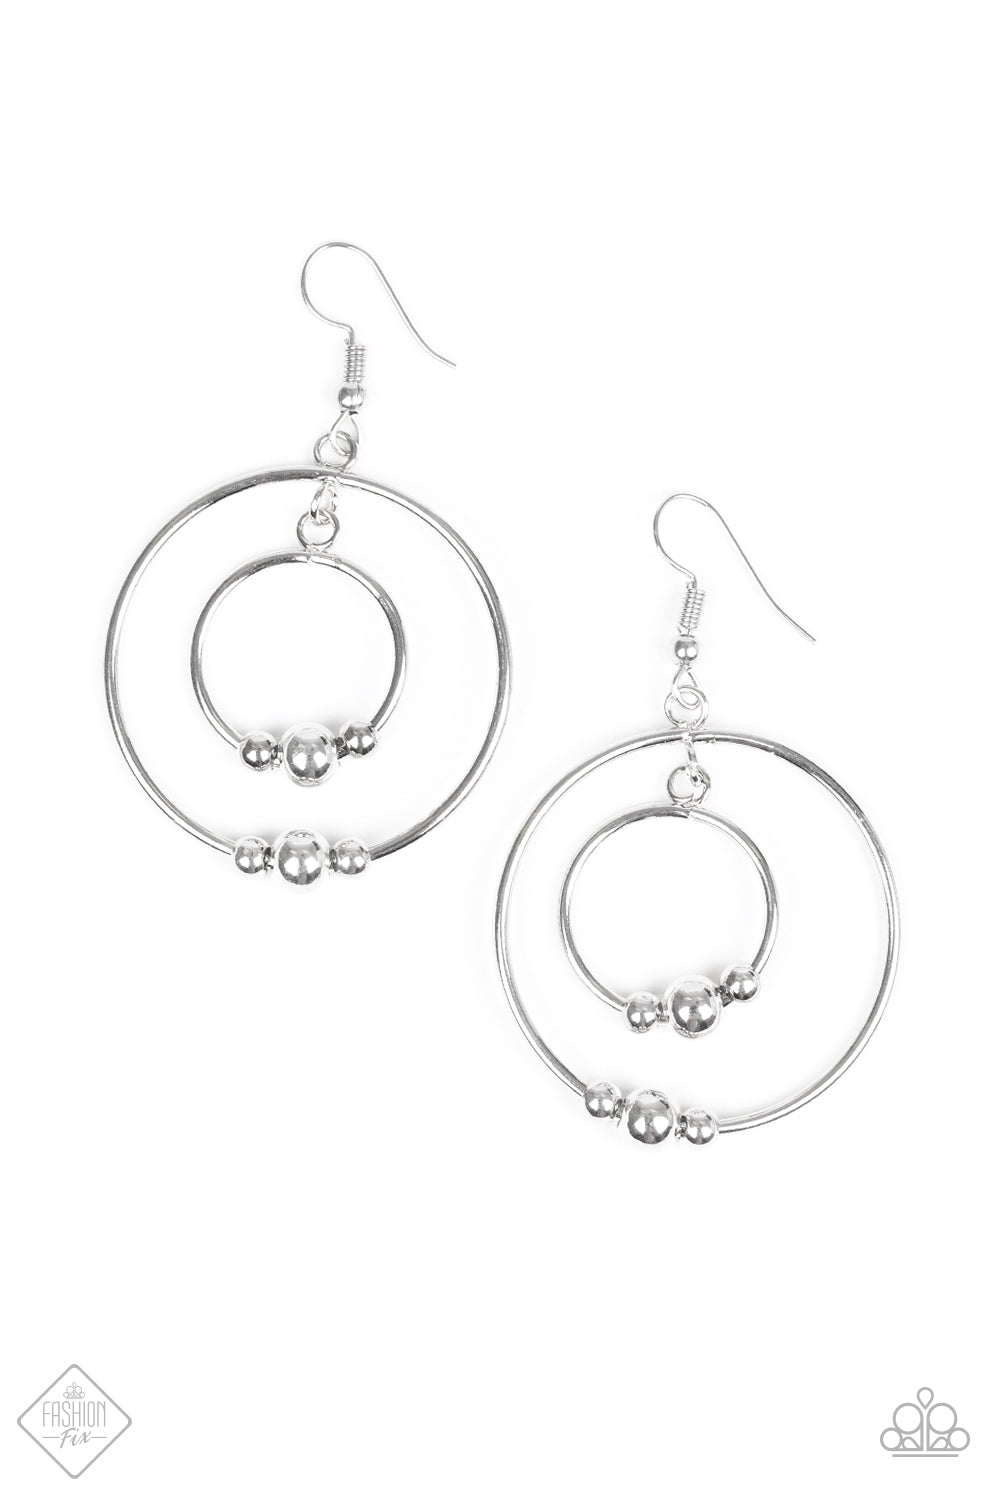 Center of Attraction - Silver Hoops - The Paparazzi Fox